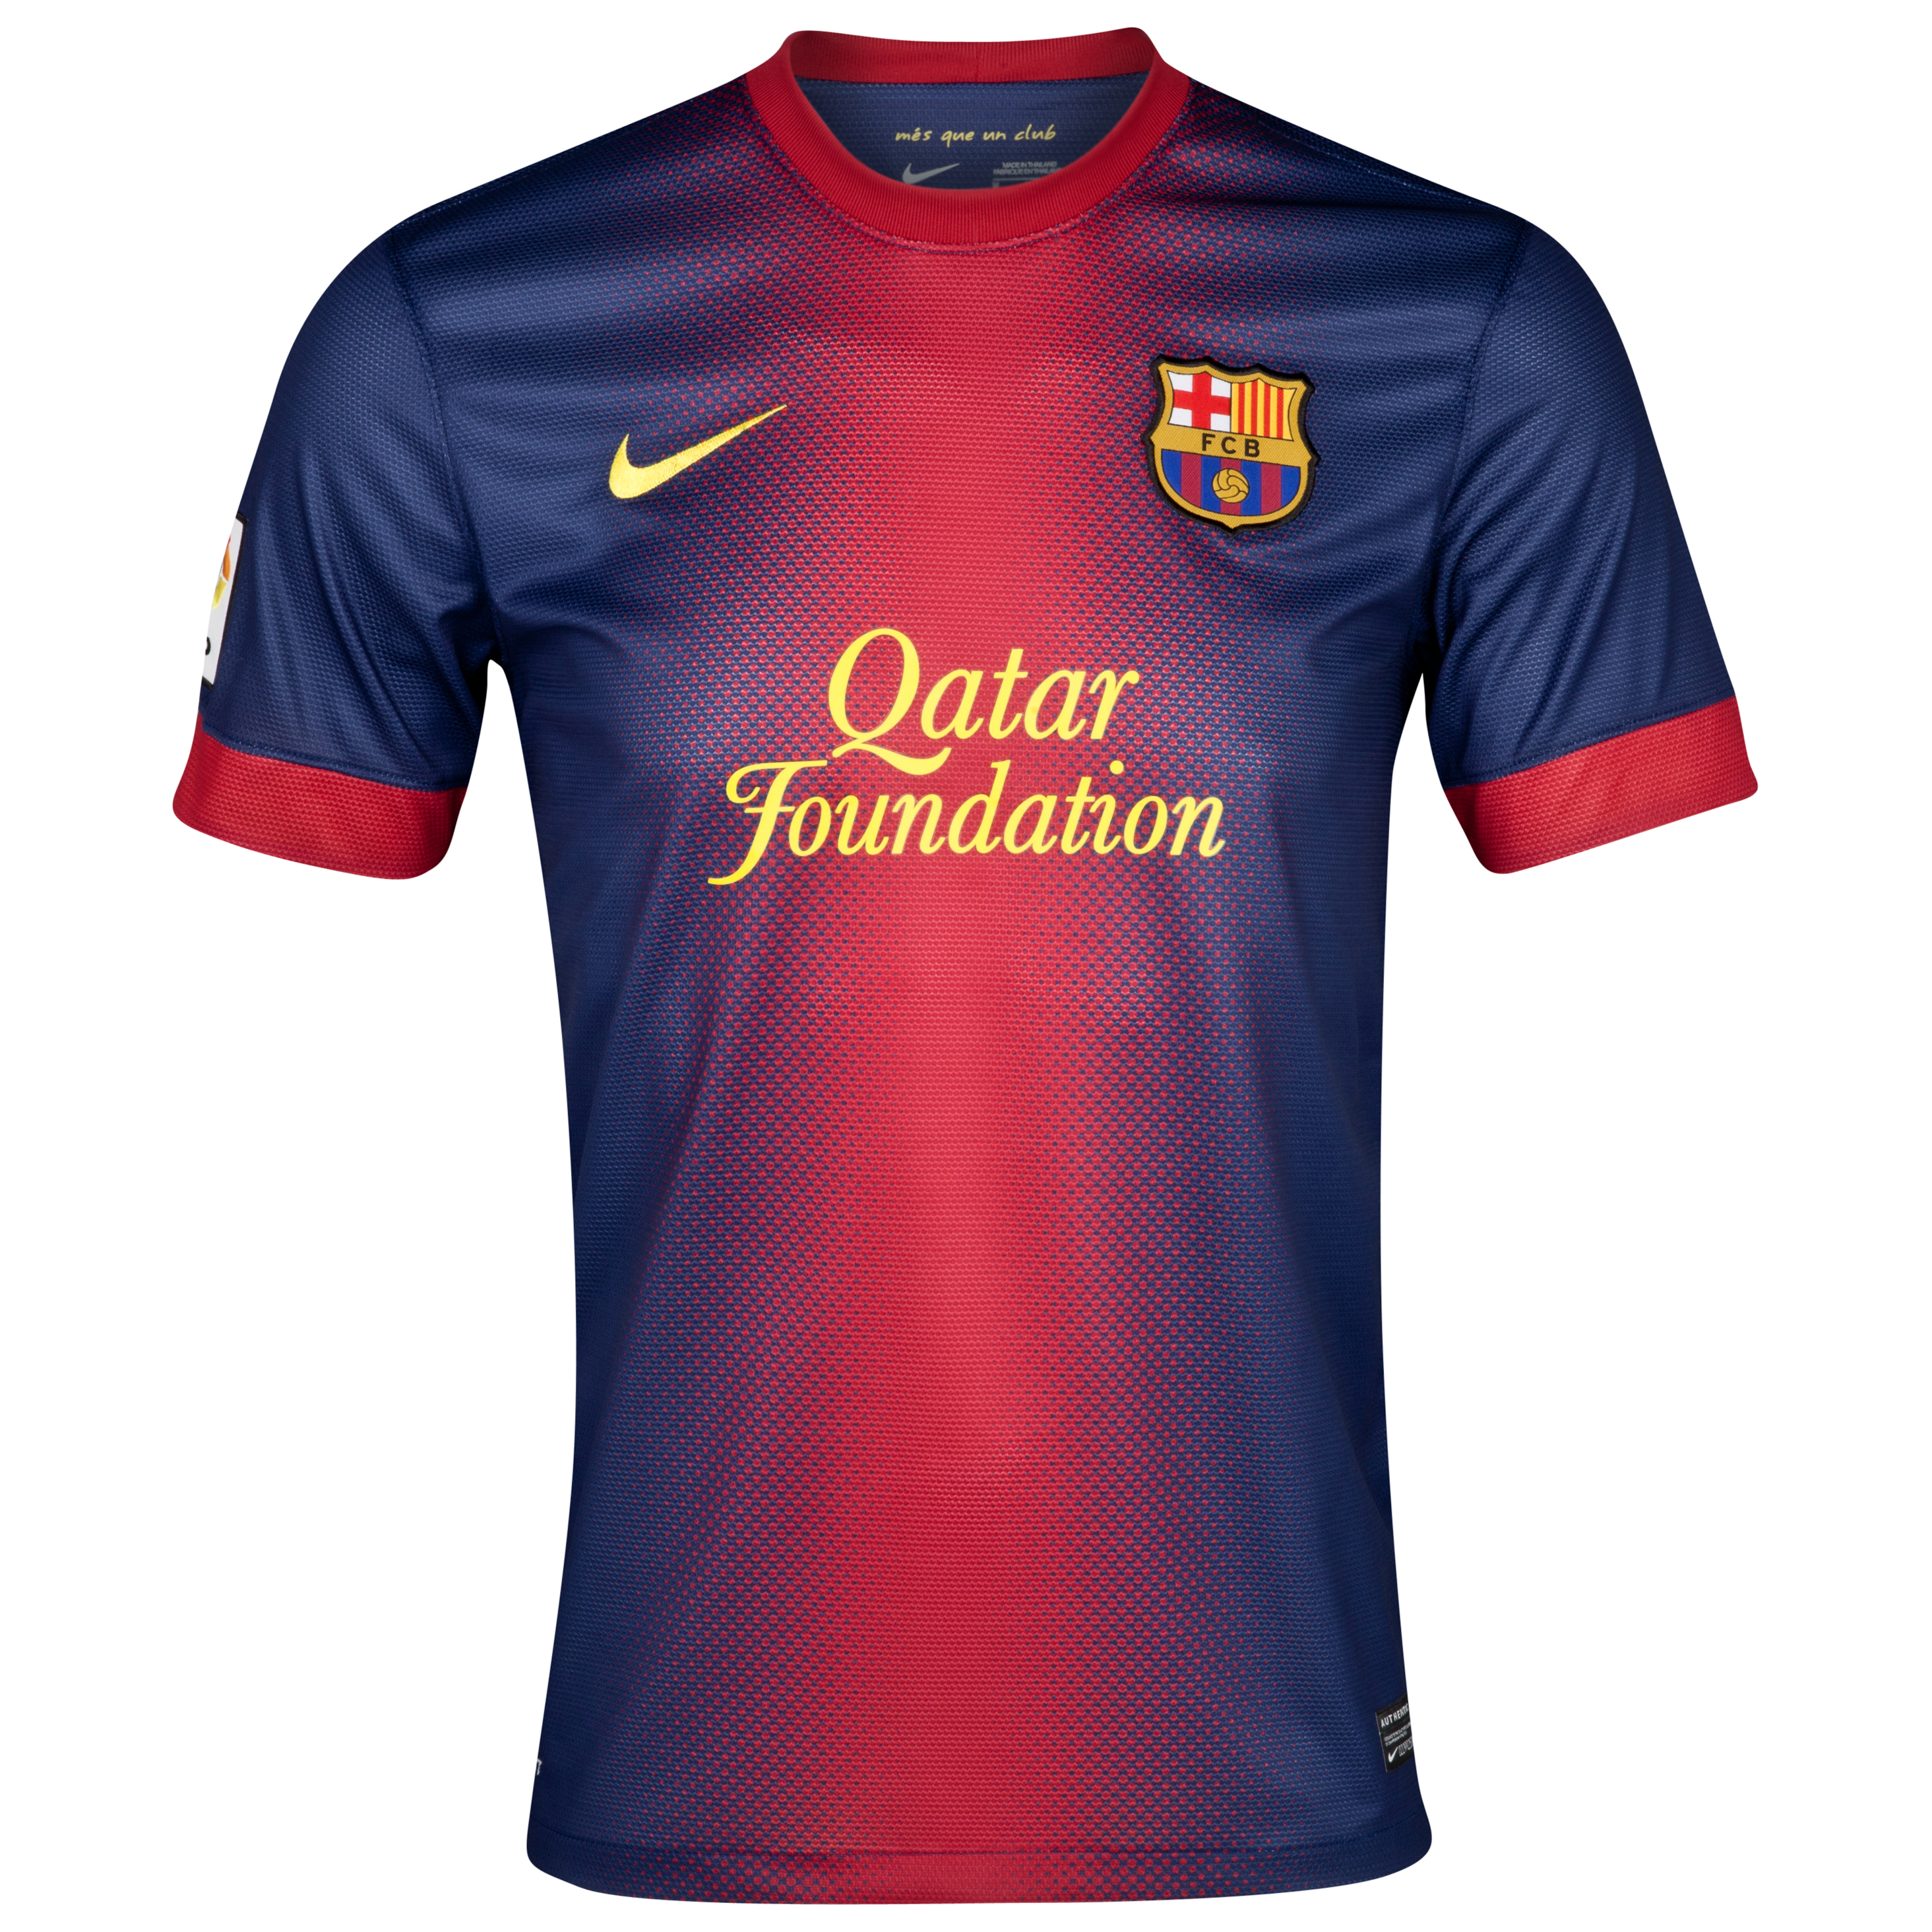 Barcelona Home Shirt 2012/13 - Youths